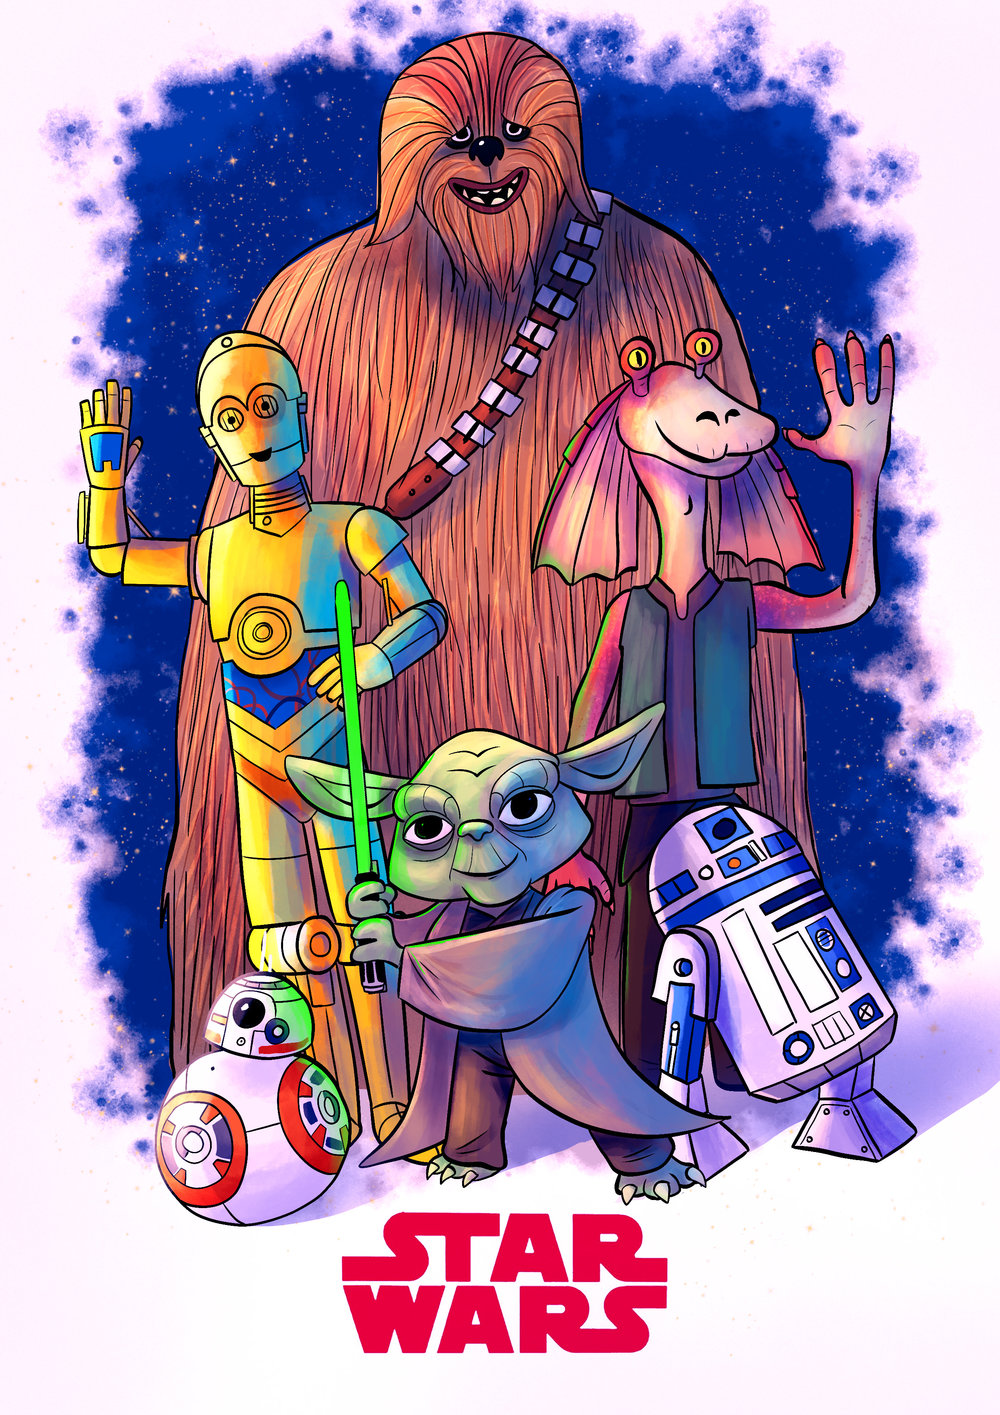 star wars illustration.jpg